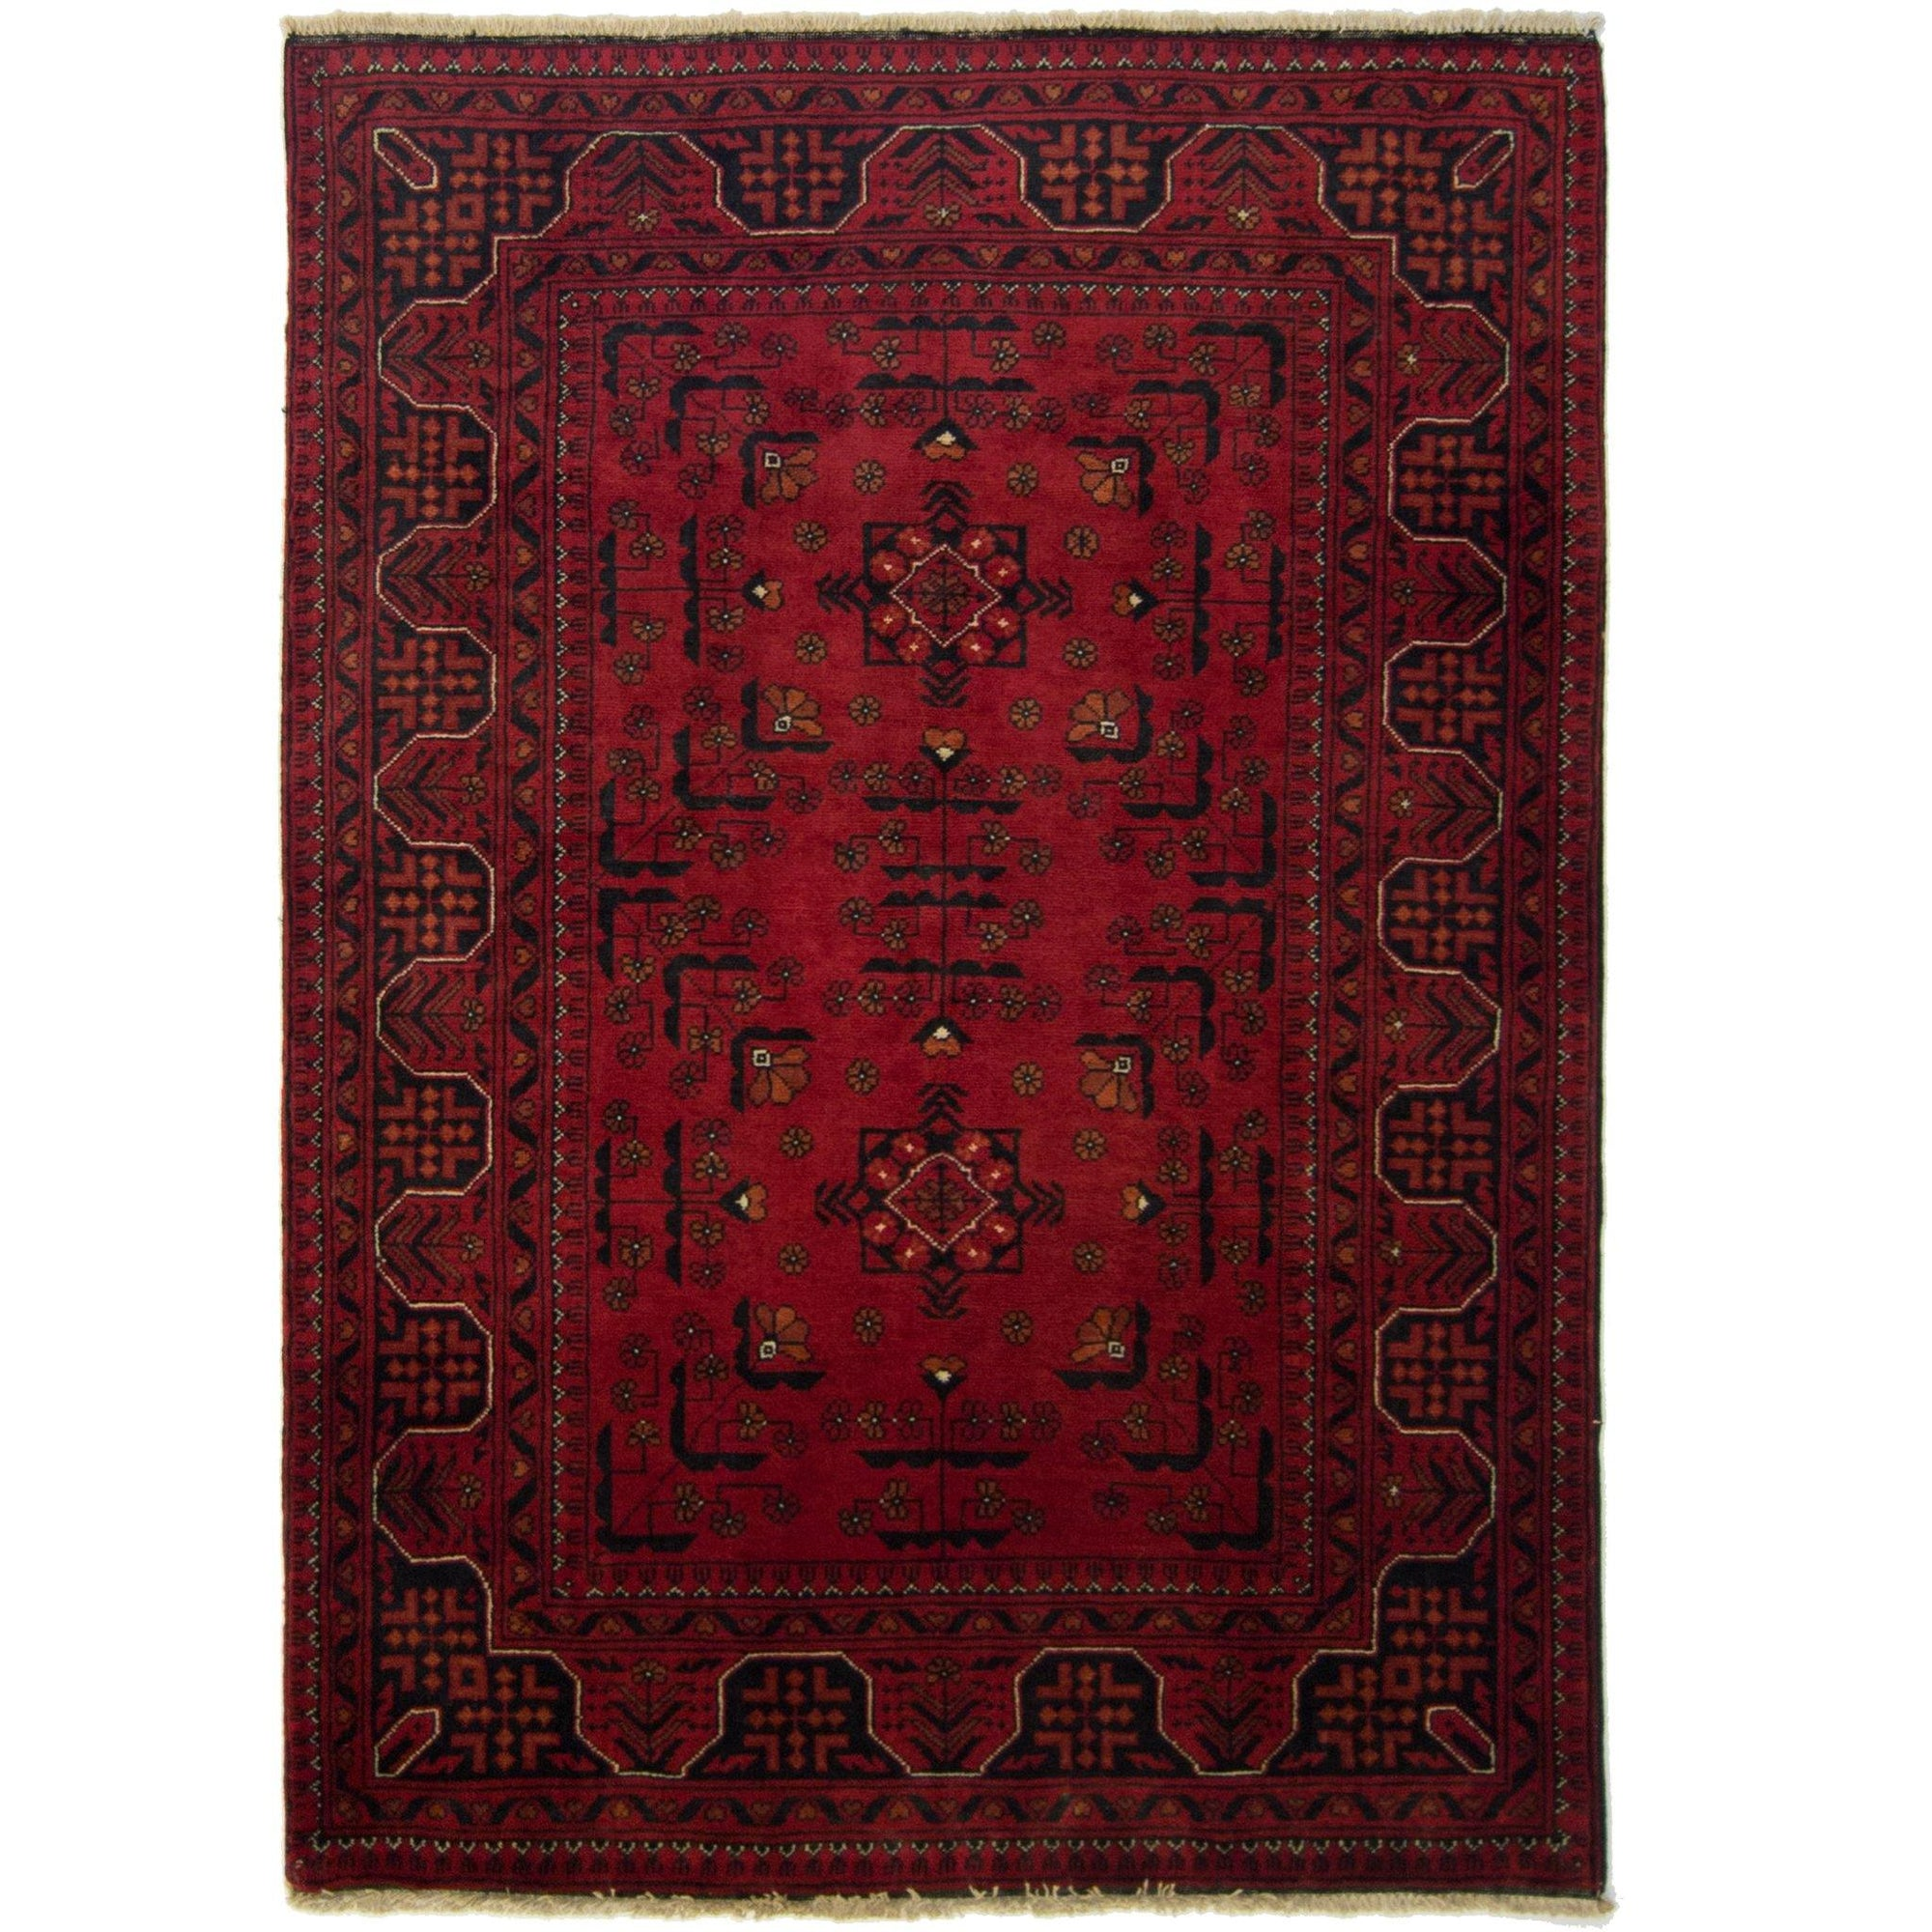 Tribal Afghan 100% Wool Hand-knotted Khal Mohammadi Rug 102 cm x 145 cm Persian-Rug | House-of-Haghi | NewMarket | Auckland | NZ | Handmade Persian Rugs | Hand Knotted Persian Rugs